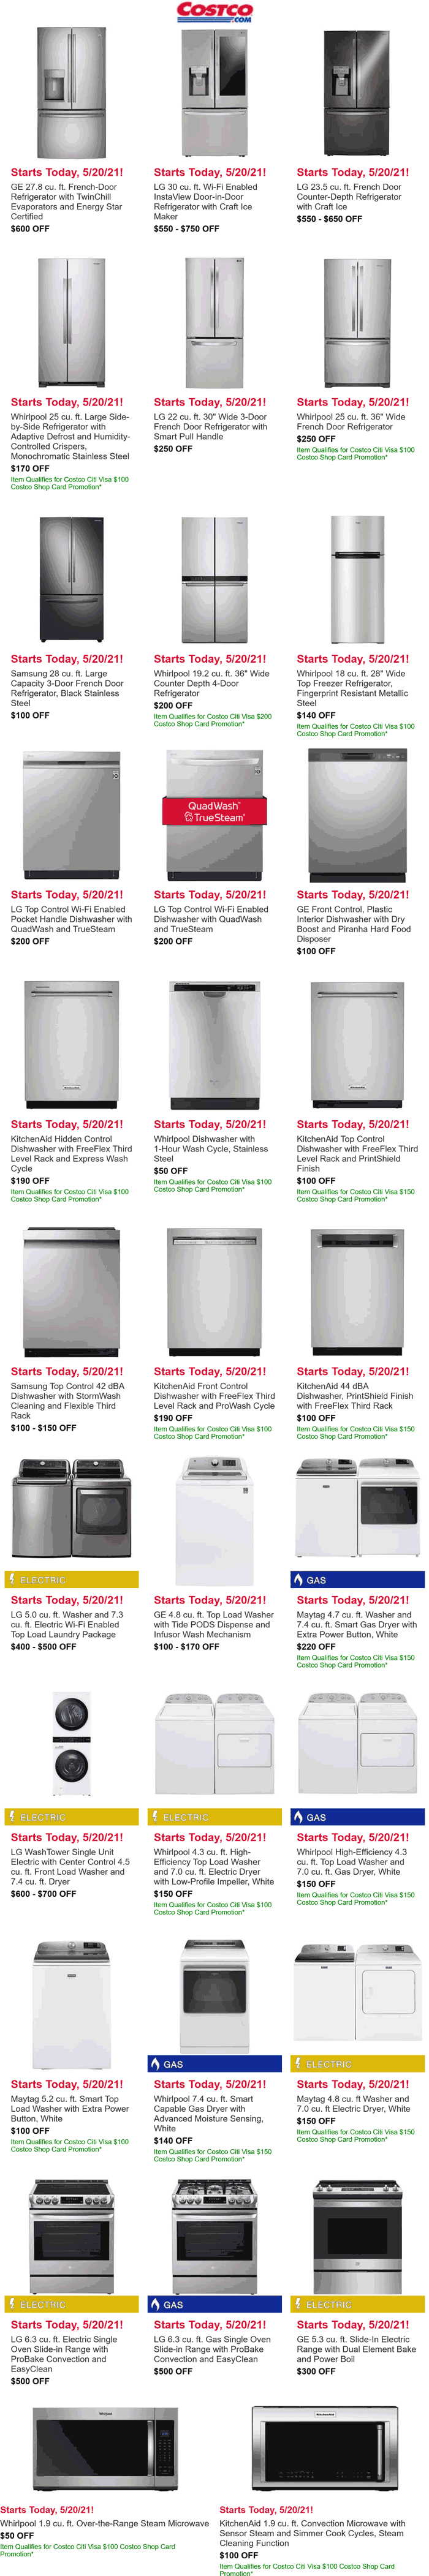 Costco stores Coupon  Major appliance sale pricing going on at Costco #costco